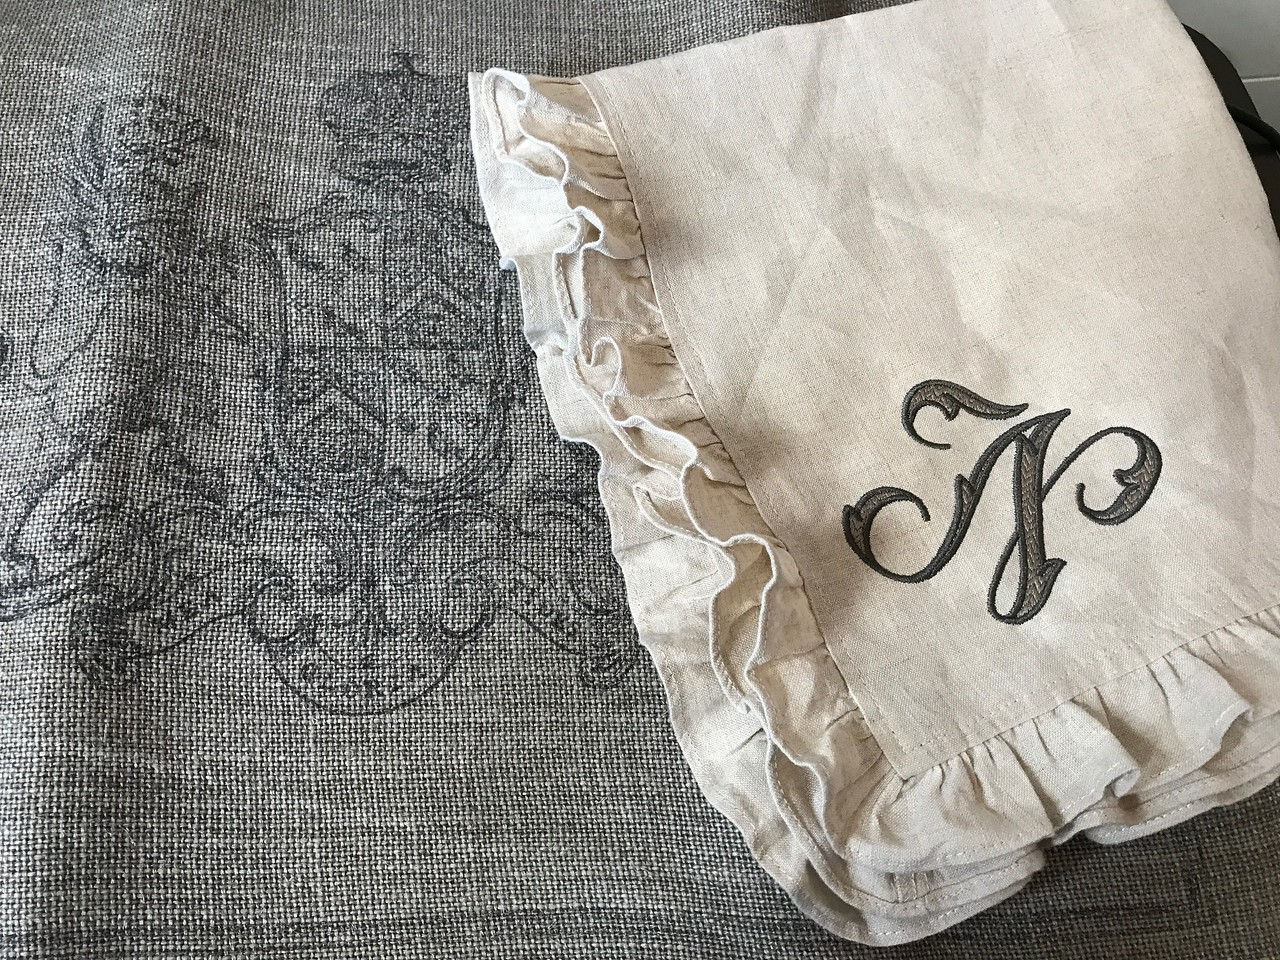 Napkins with placemats